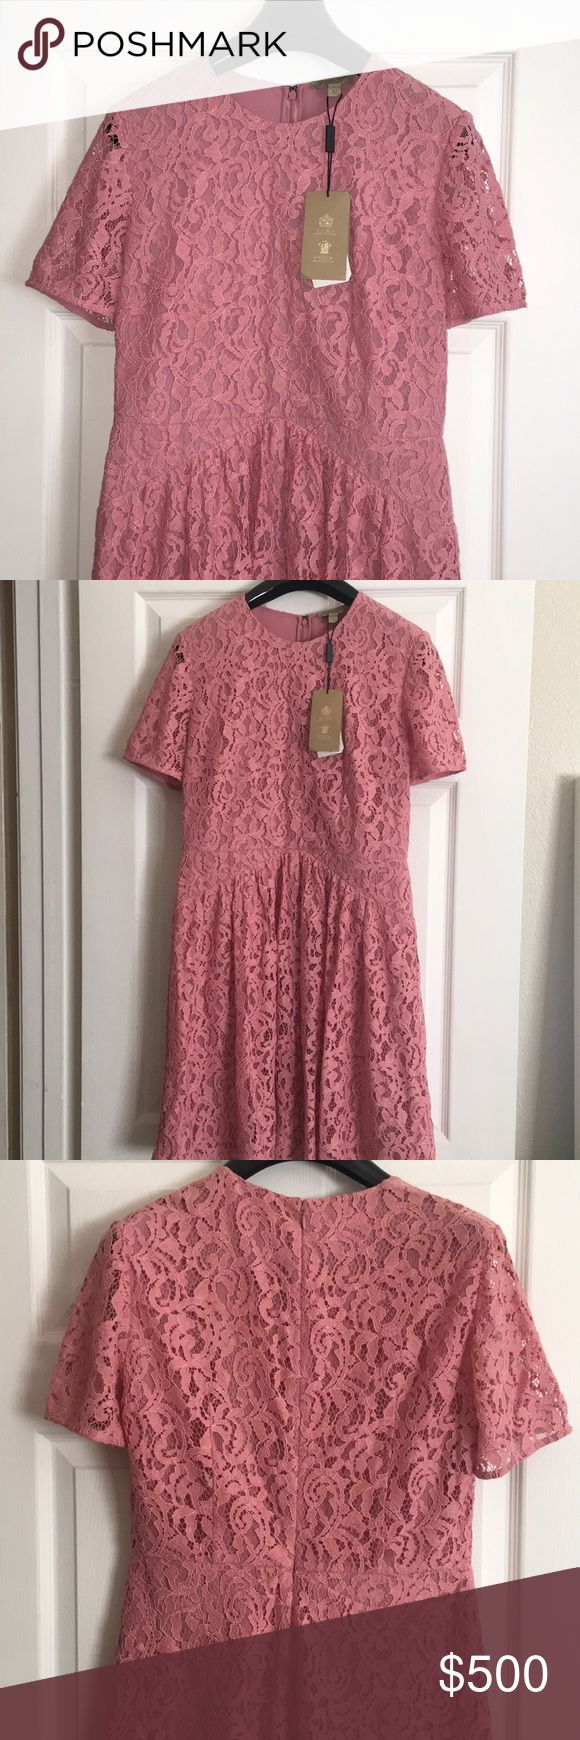 Burberry Christy Lace Dress Pink lace dress with short sleeves, fit and flare skirt Burberry Dresses Midi